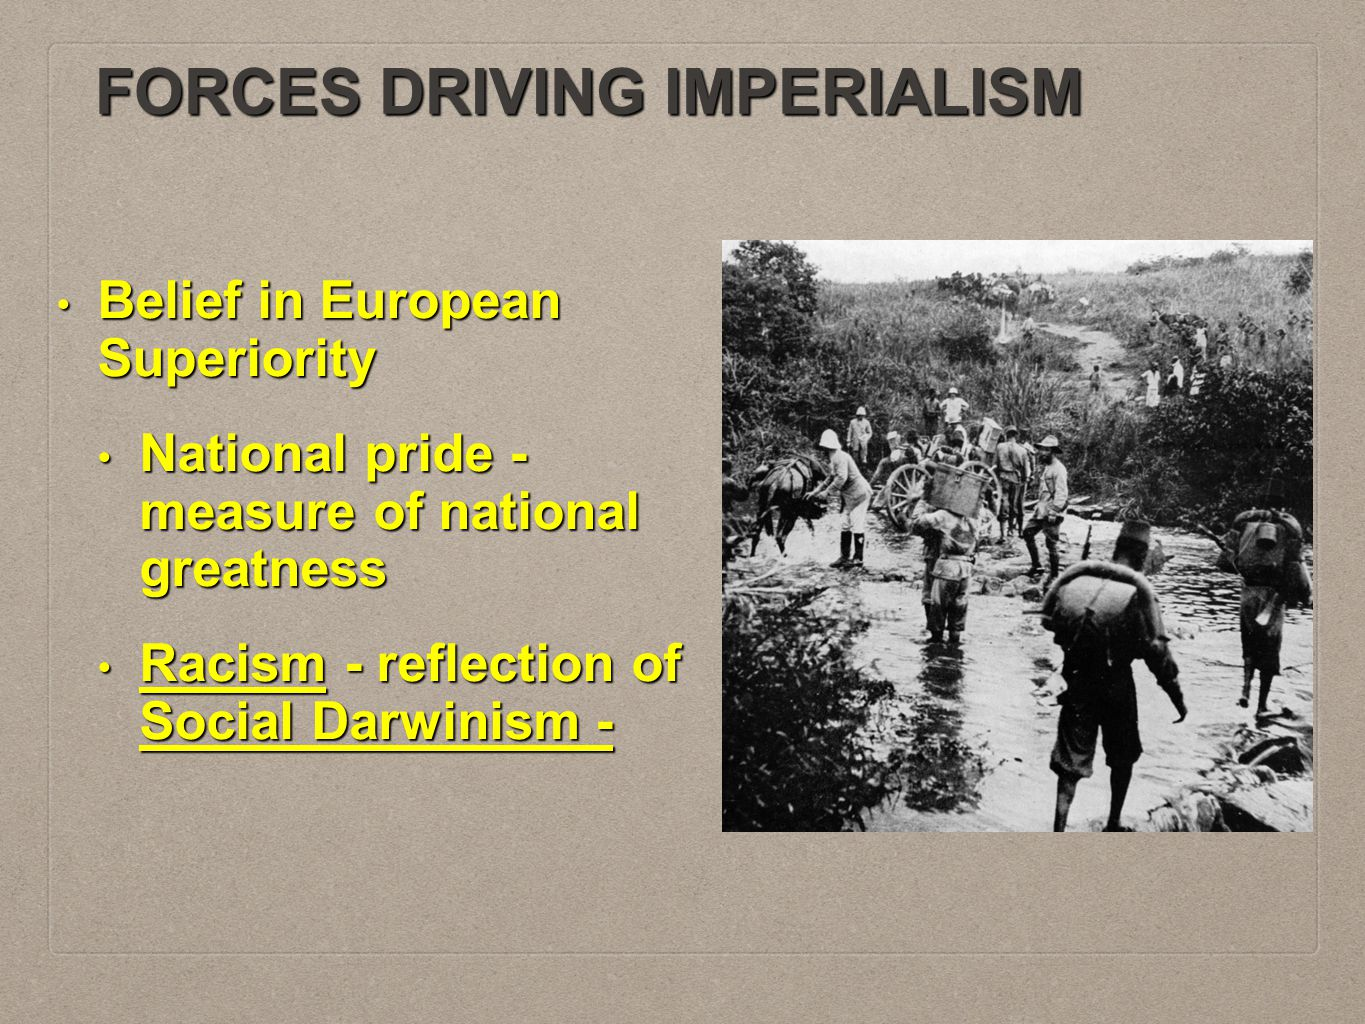 FACTORS PROMOTING IMPERIALISM IN AFRICA Europe: Technologically superior.